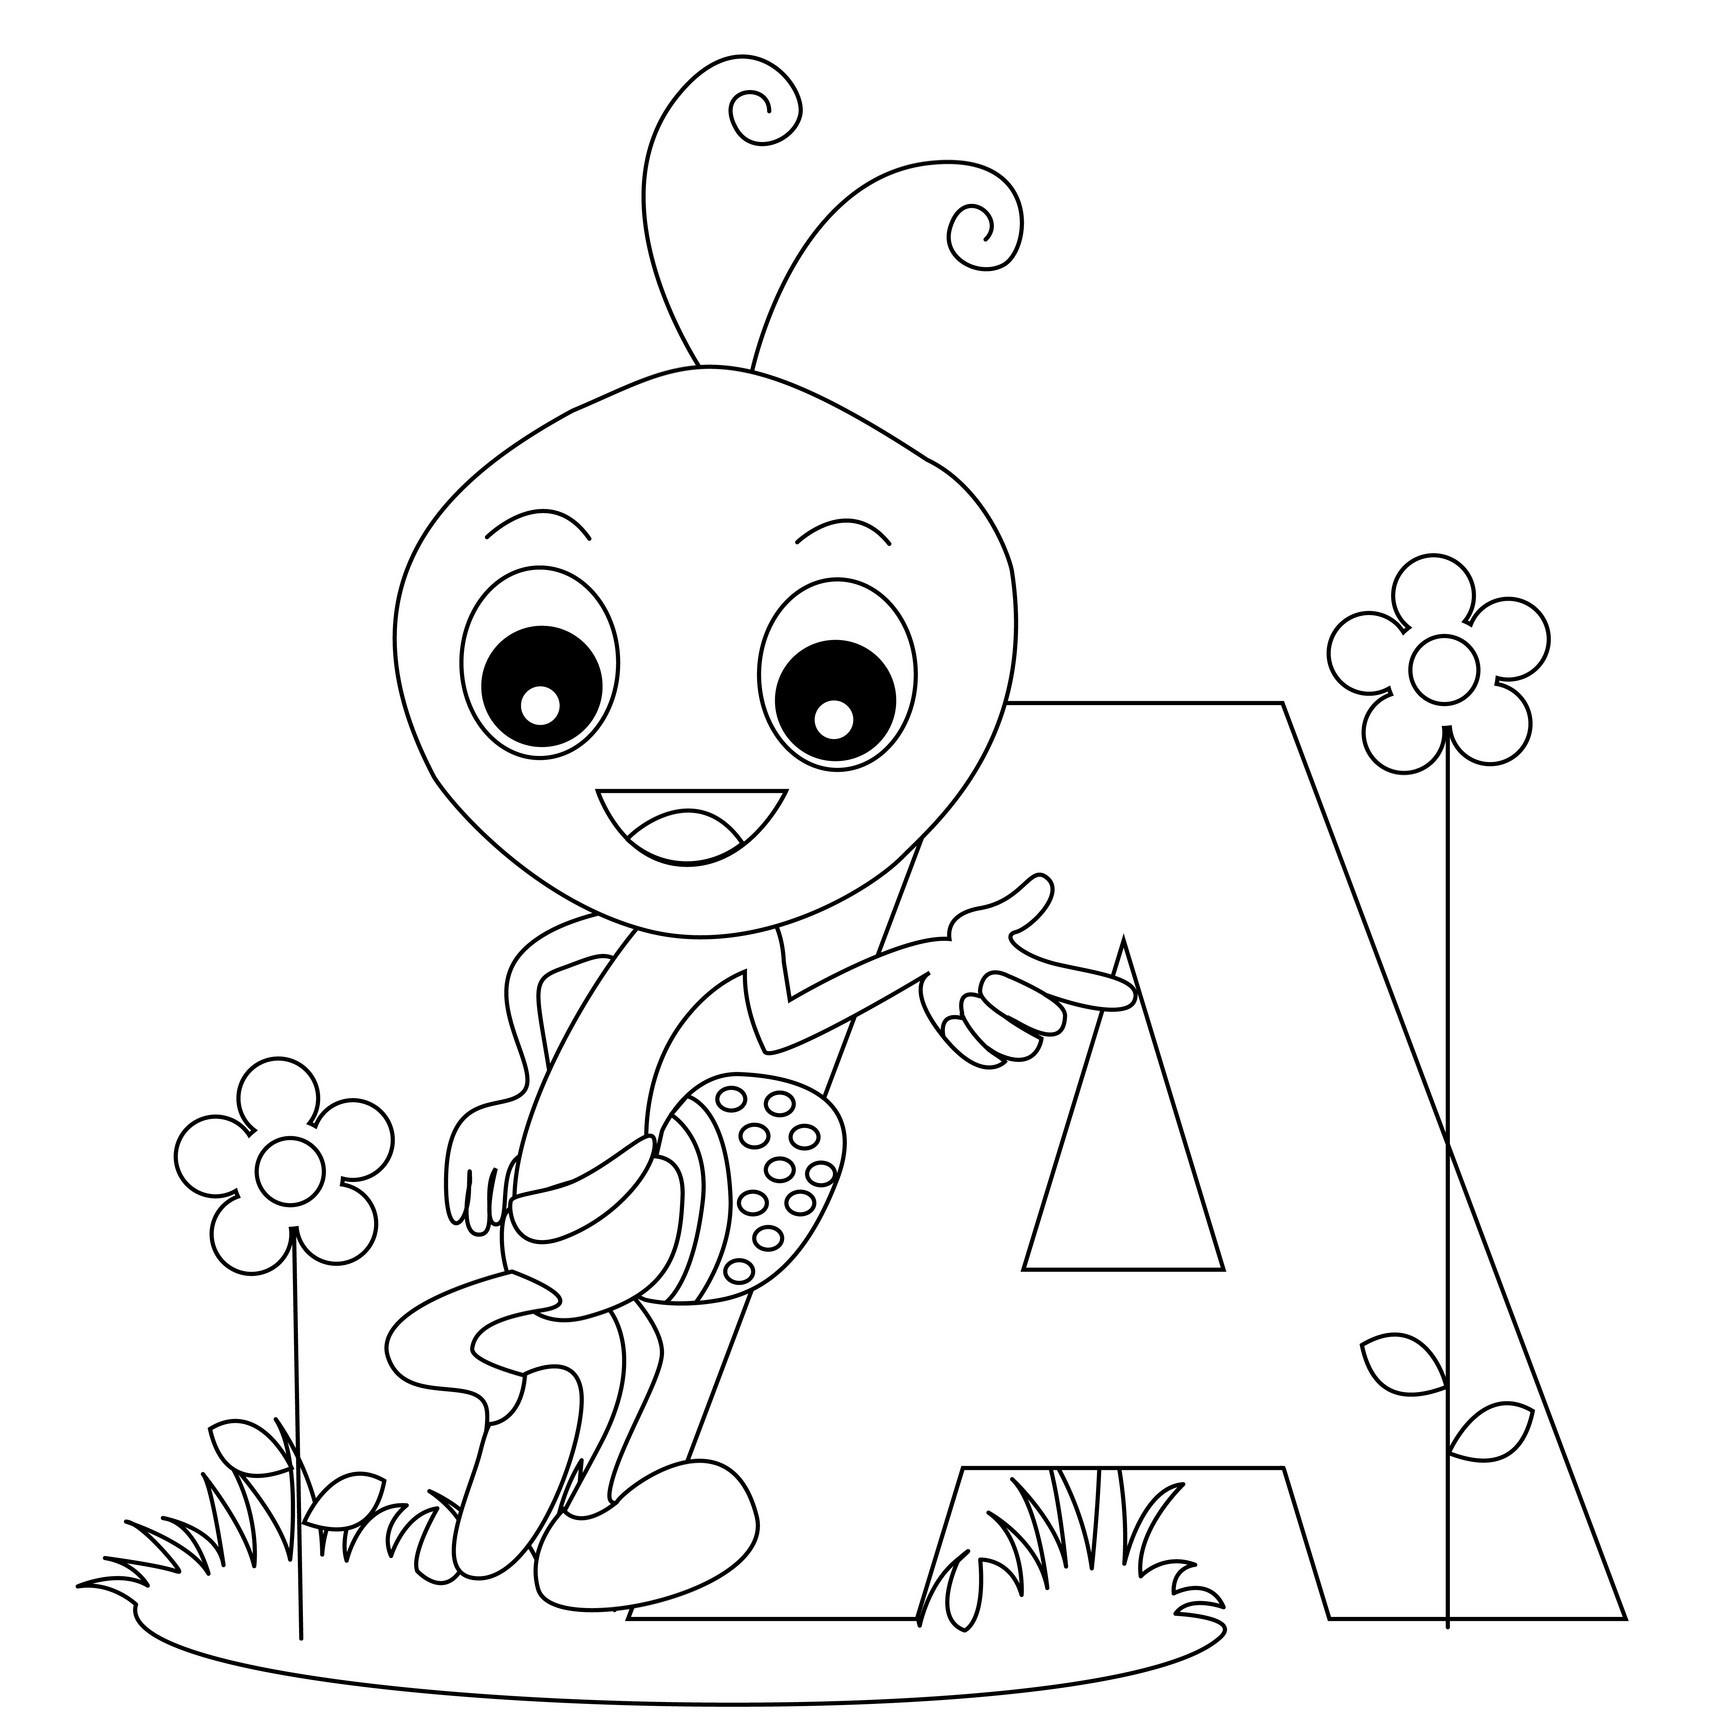 free alphabet coloring pages for toddlers free printable alphabet coloring pages for kids best